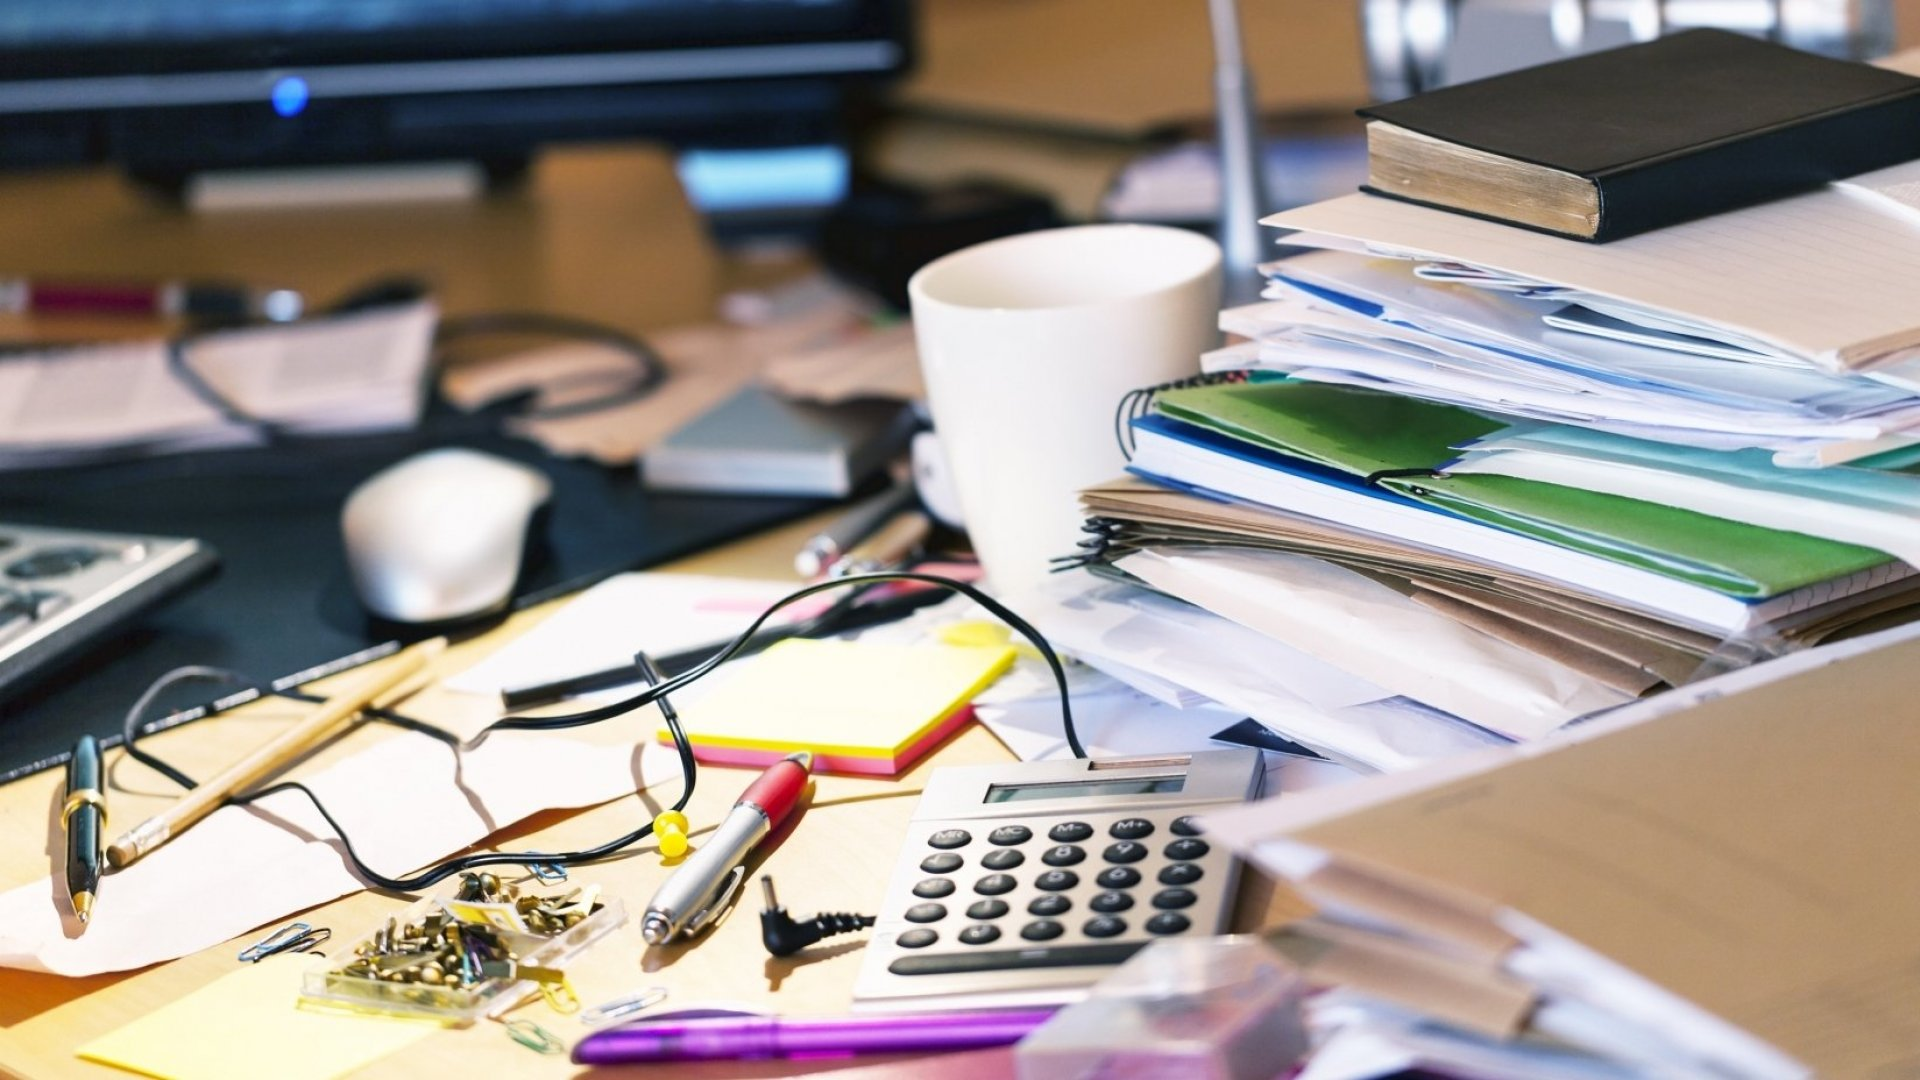 A Messy Desk Is a Sign of Genius, According to Science